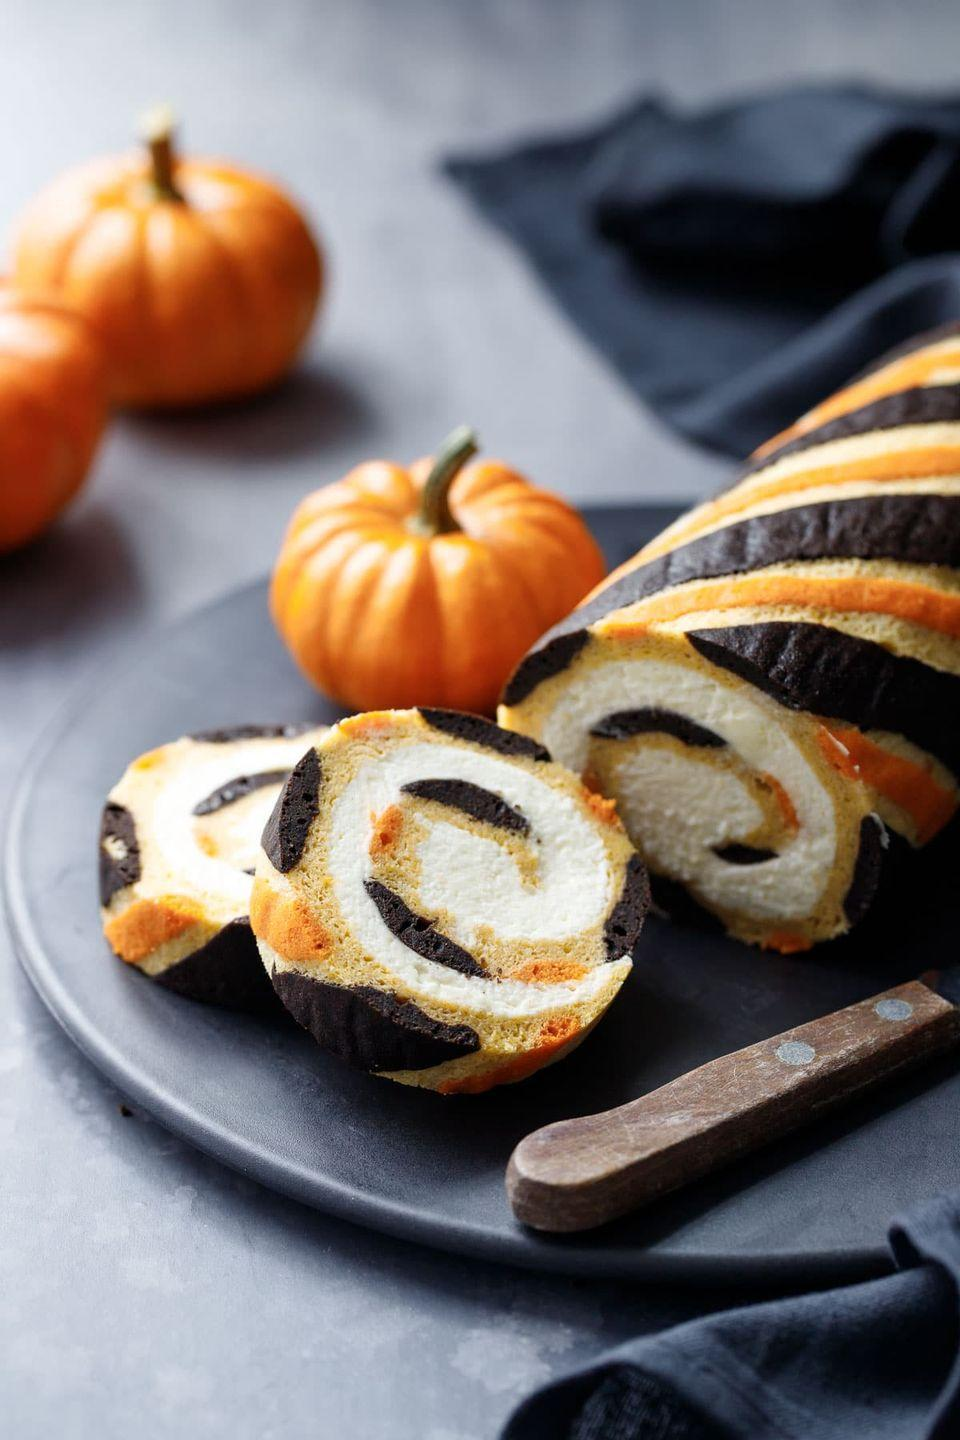 """<p>Upgrade the ubiquitous pumpkin roll with a creamy mascarpone whipped cream filling and stunning black and orange stripes. </p><p><a class=""""link rapid-noclick-resp"""" href=""""https://www.loveandoliveoil.com/2018/10/pumpkin-cake-roll.html"""" rel=""""nofollow noopener"""" target=""""_blank"""" data-ylk=""""slk:GET THE RECIPE"""">GET THE RECIPE</a></p>"""